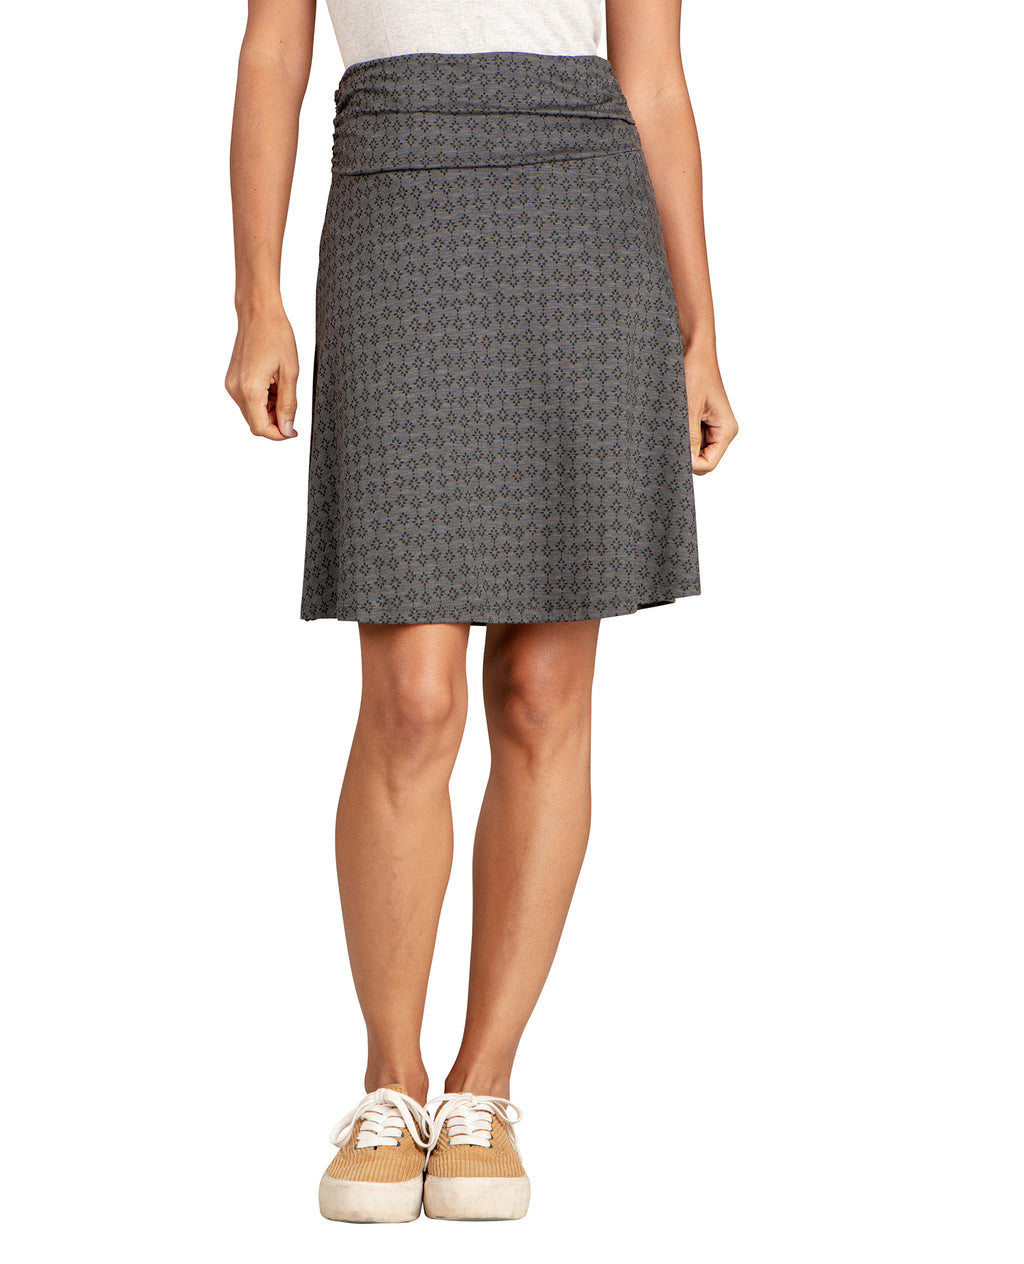 Texture Print Greyish skirt. Semi-flowy bottom. Just above knee length.